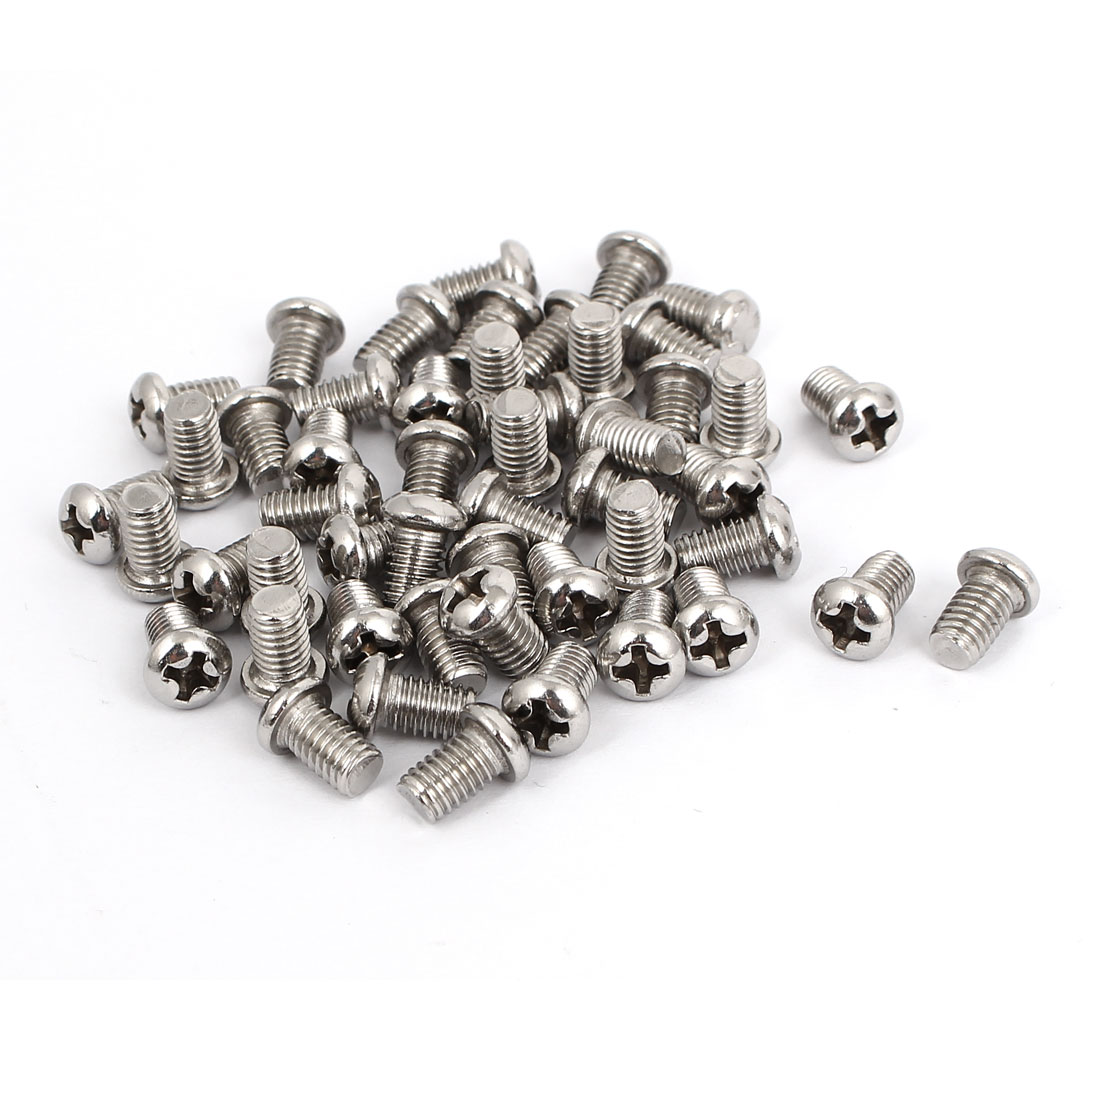 M5x8mm Stainless Steel Phillips Round Pan Head Machine Screws 50pcs